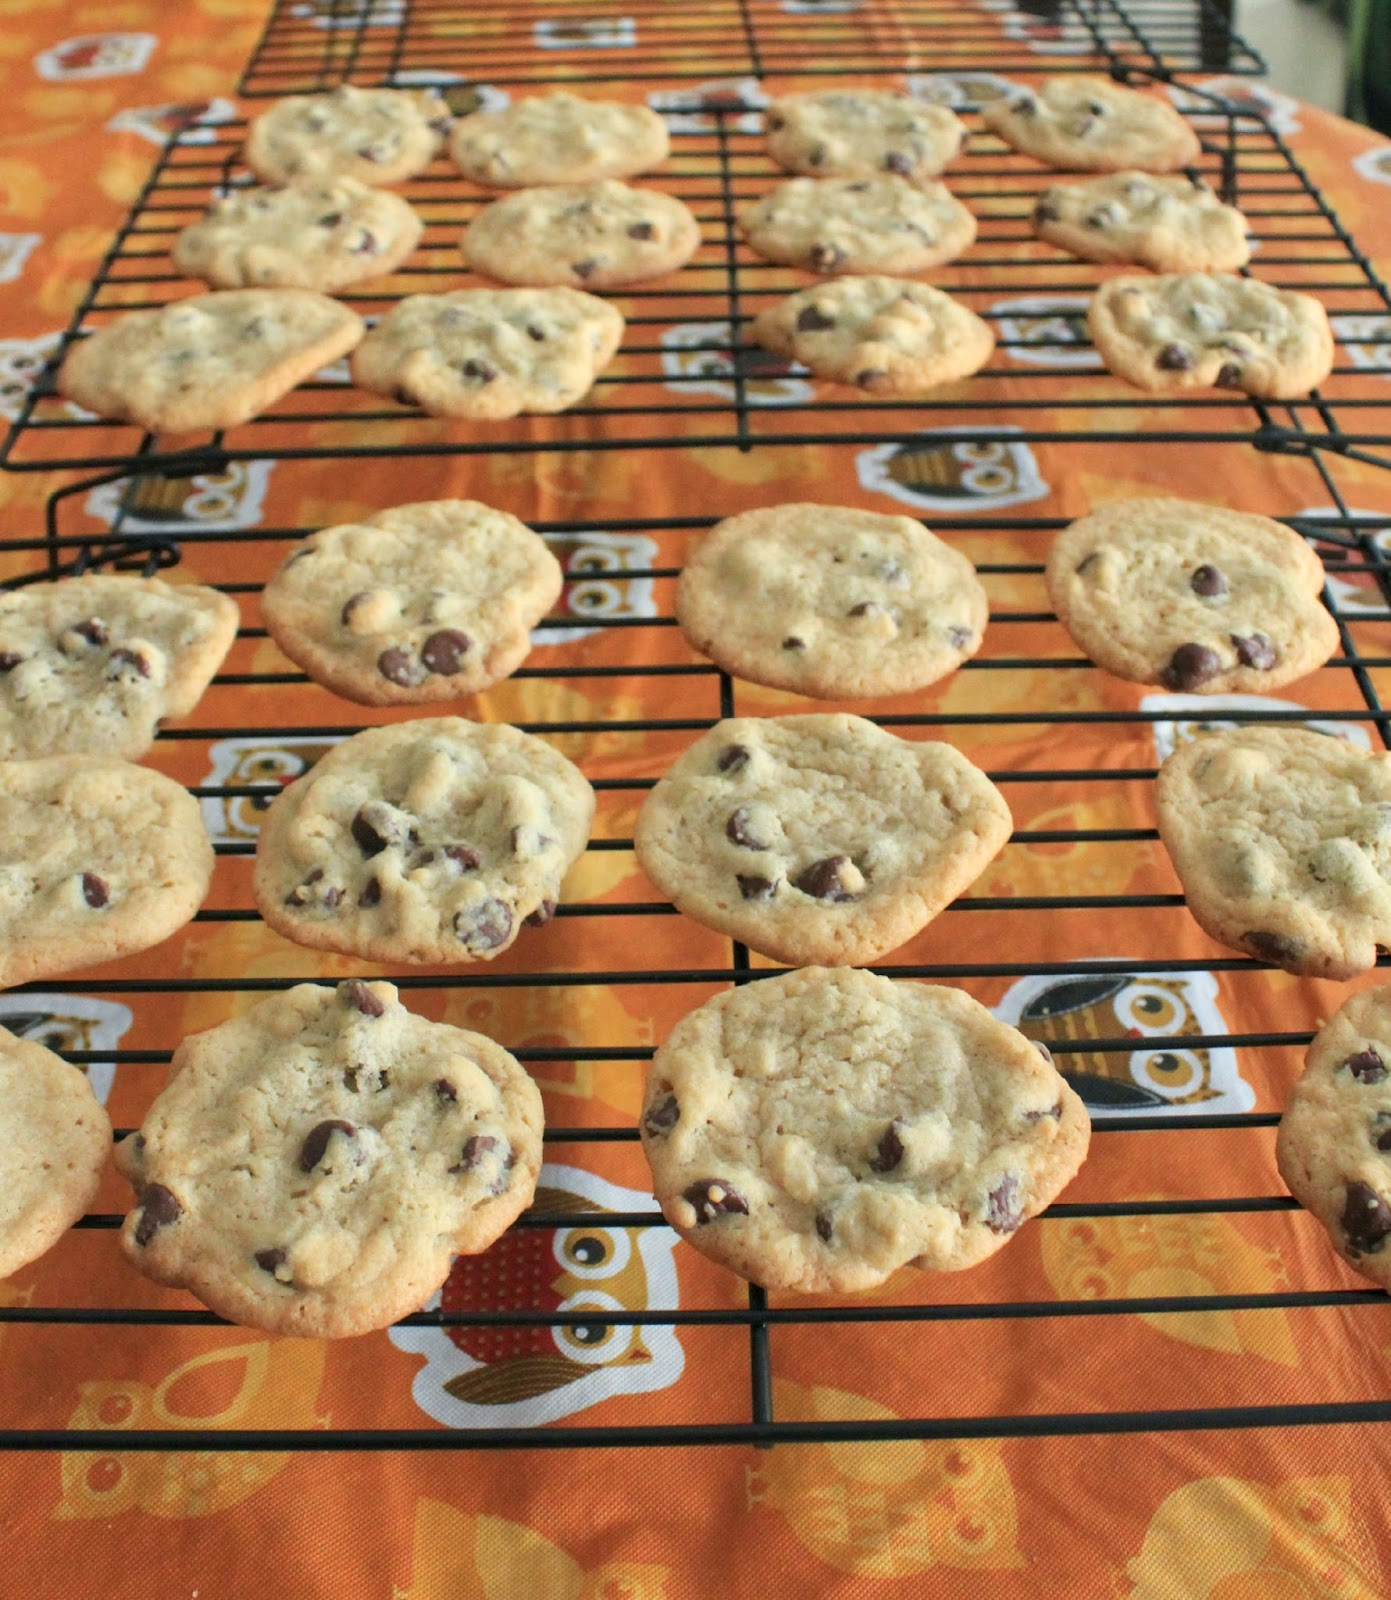 chocolate chip cookies right out of the oven! #ExtraGumMoments #shop